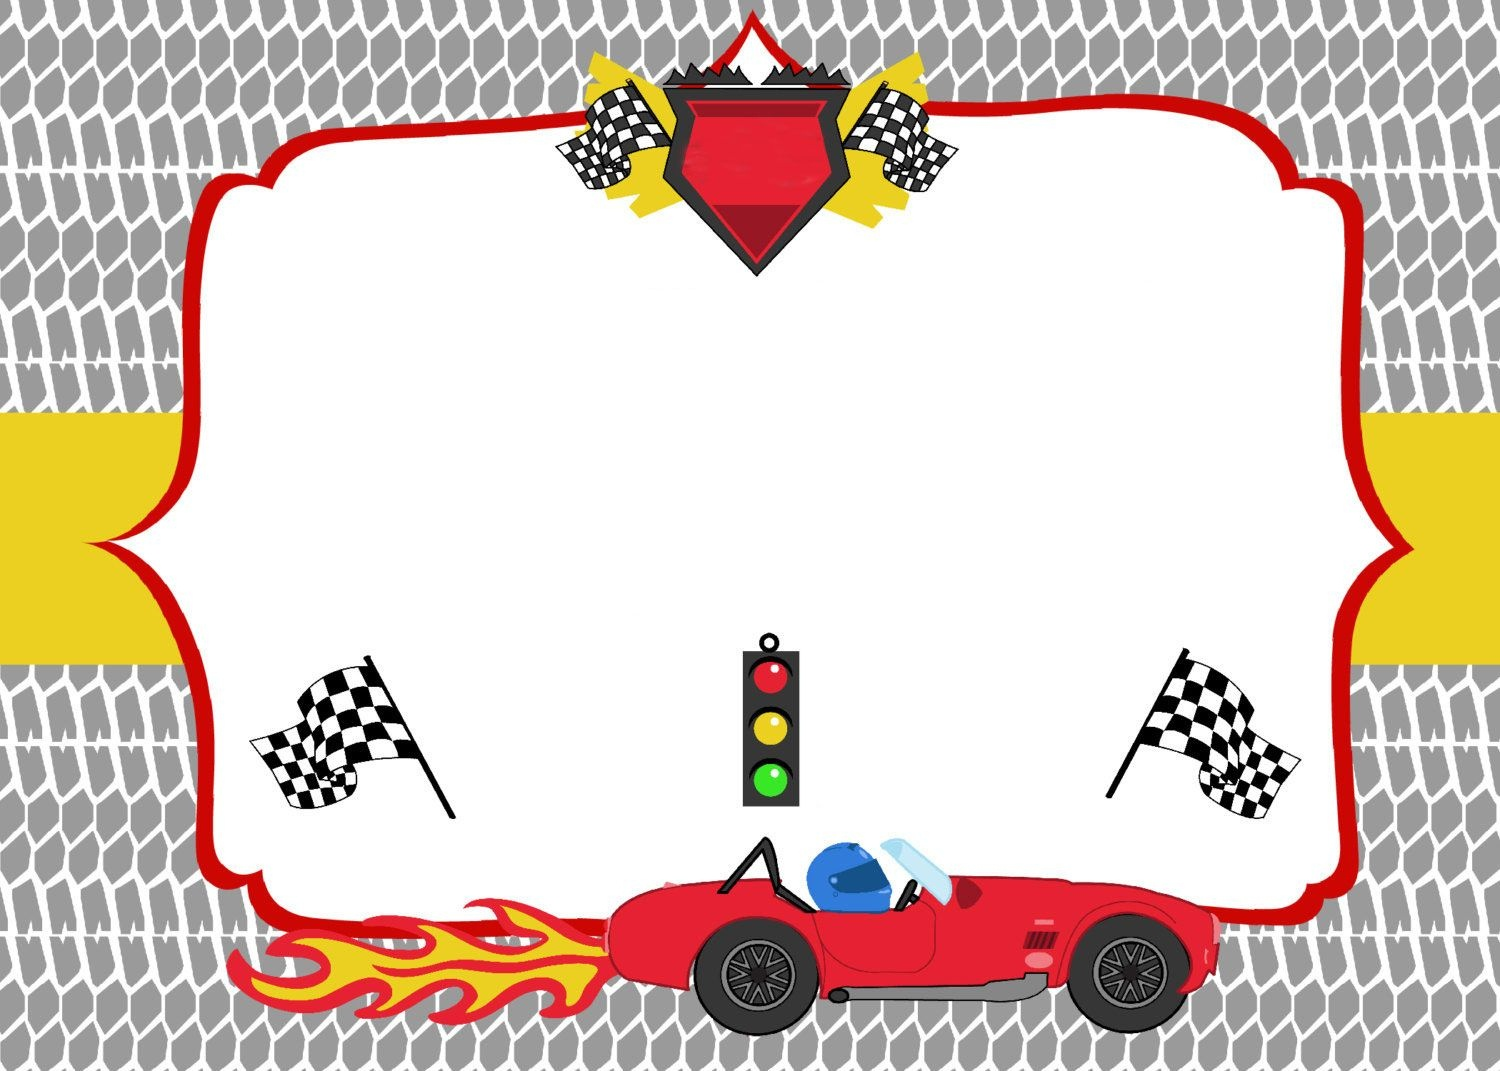 Free Printable Race Car Birthday Party Invitations - Updated! | Free - Free Printable Birthday Invitations Cars Theme